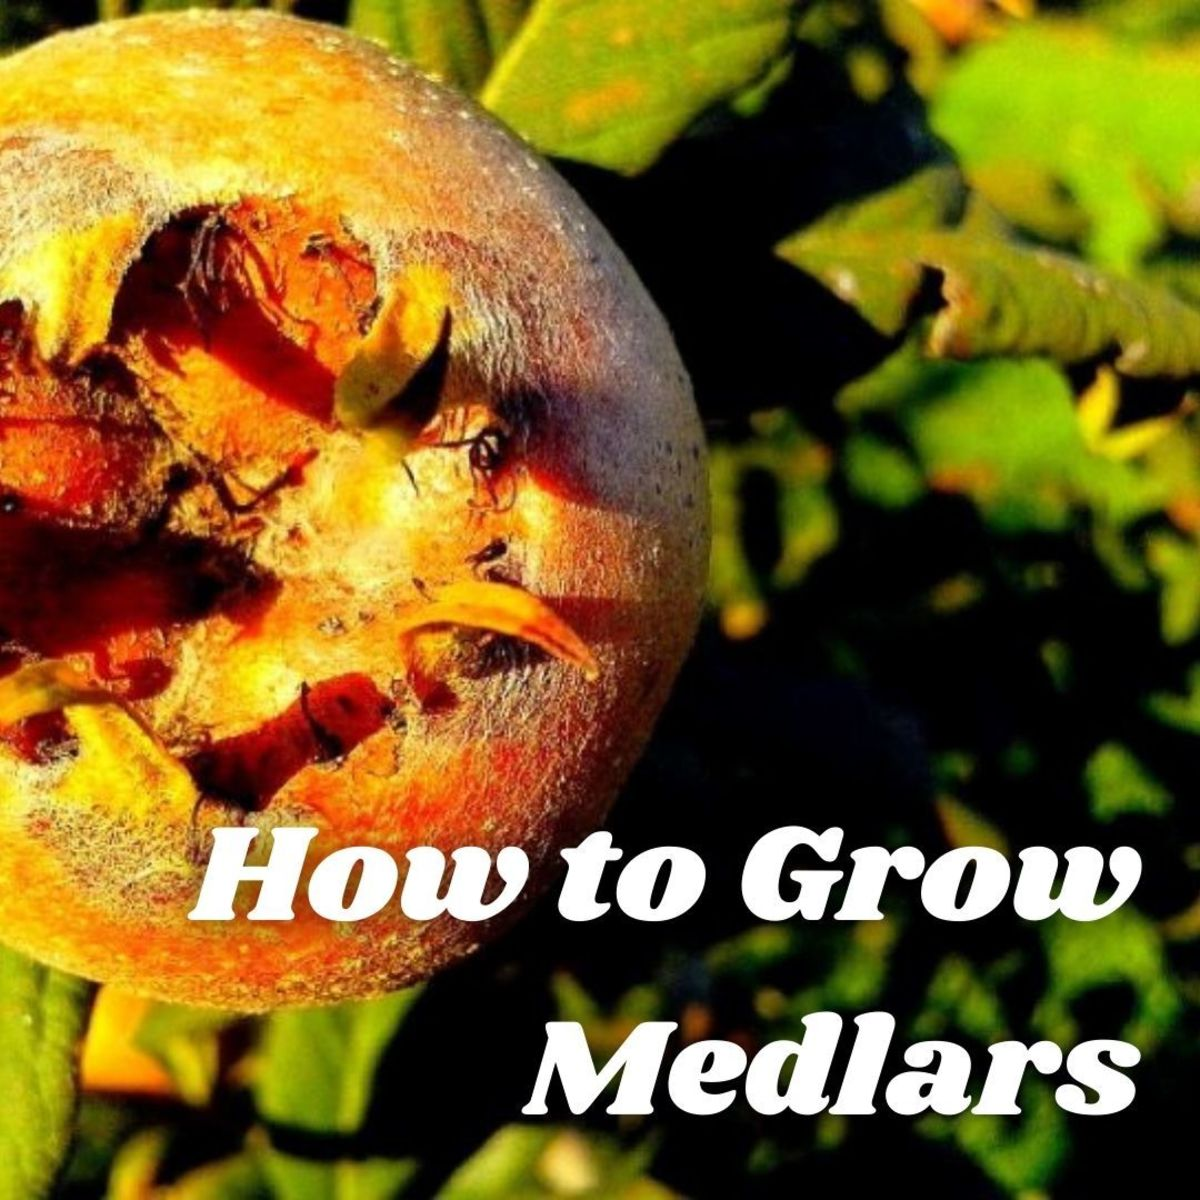 Medlars are small trees with attractive flowers and decorative edible fruits which, in taste and texture, resemble apple puree.